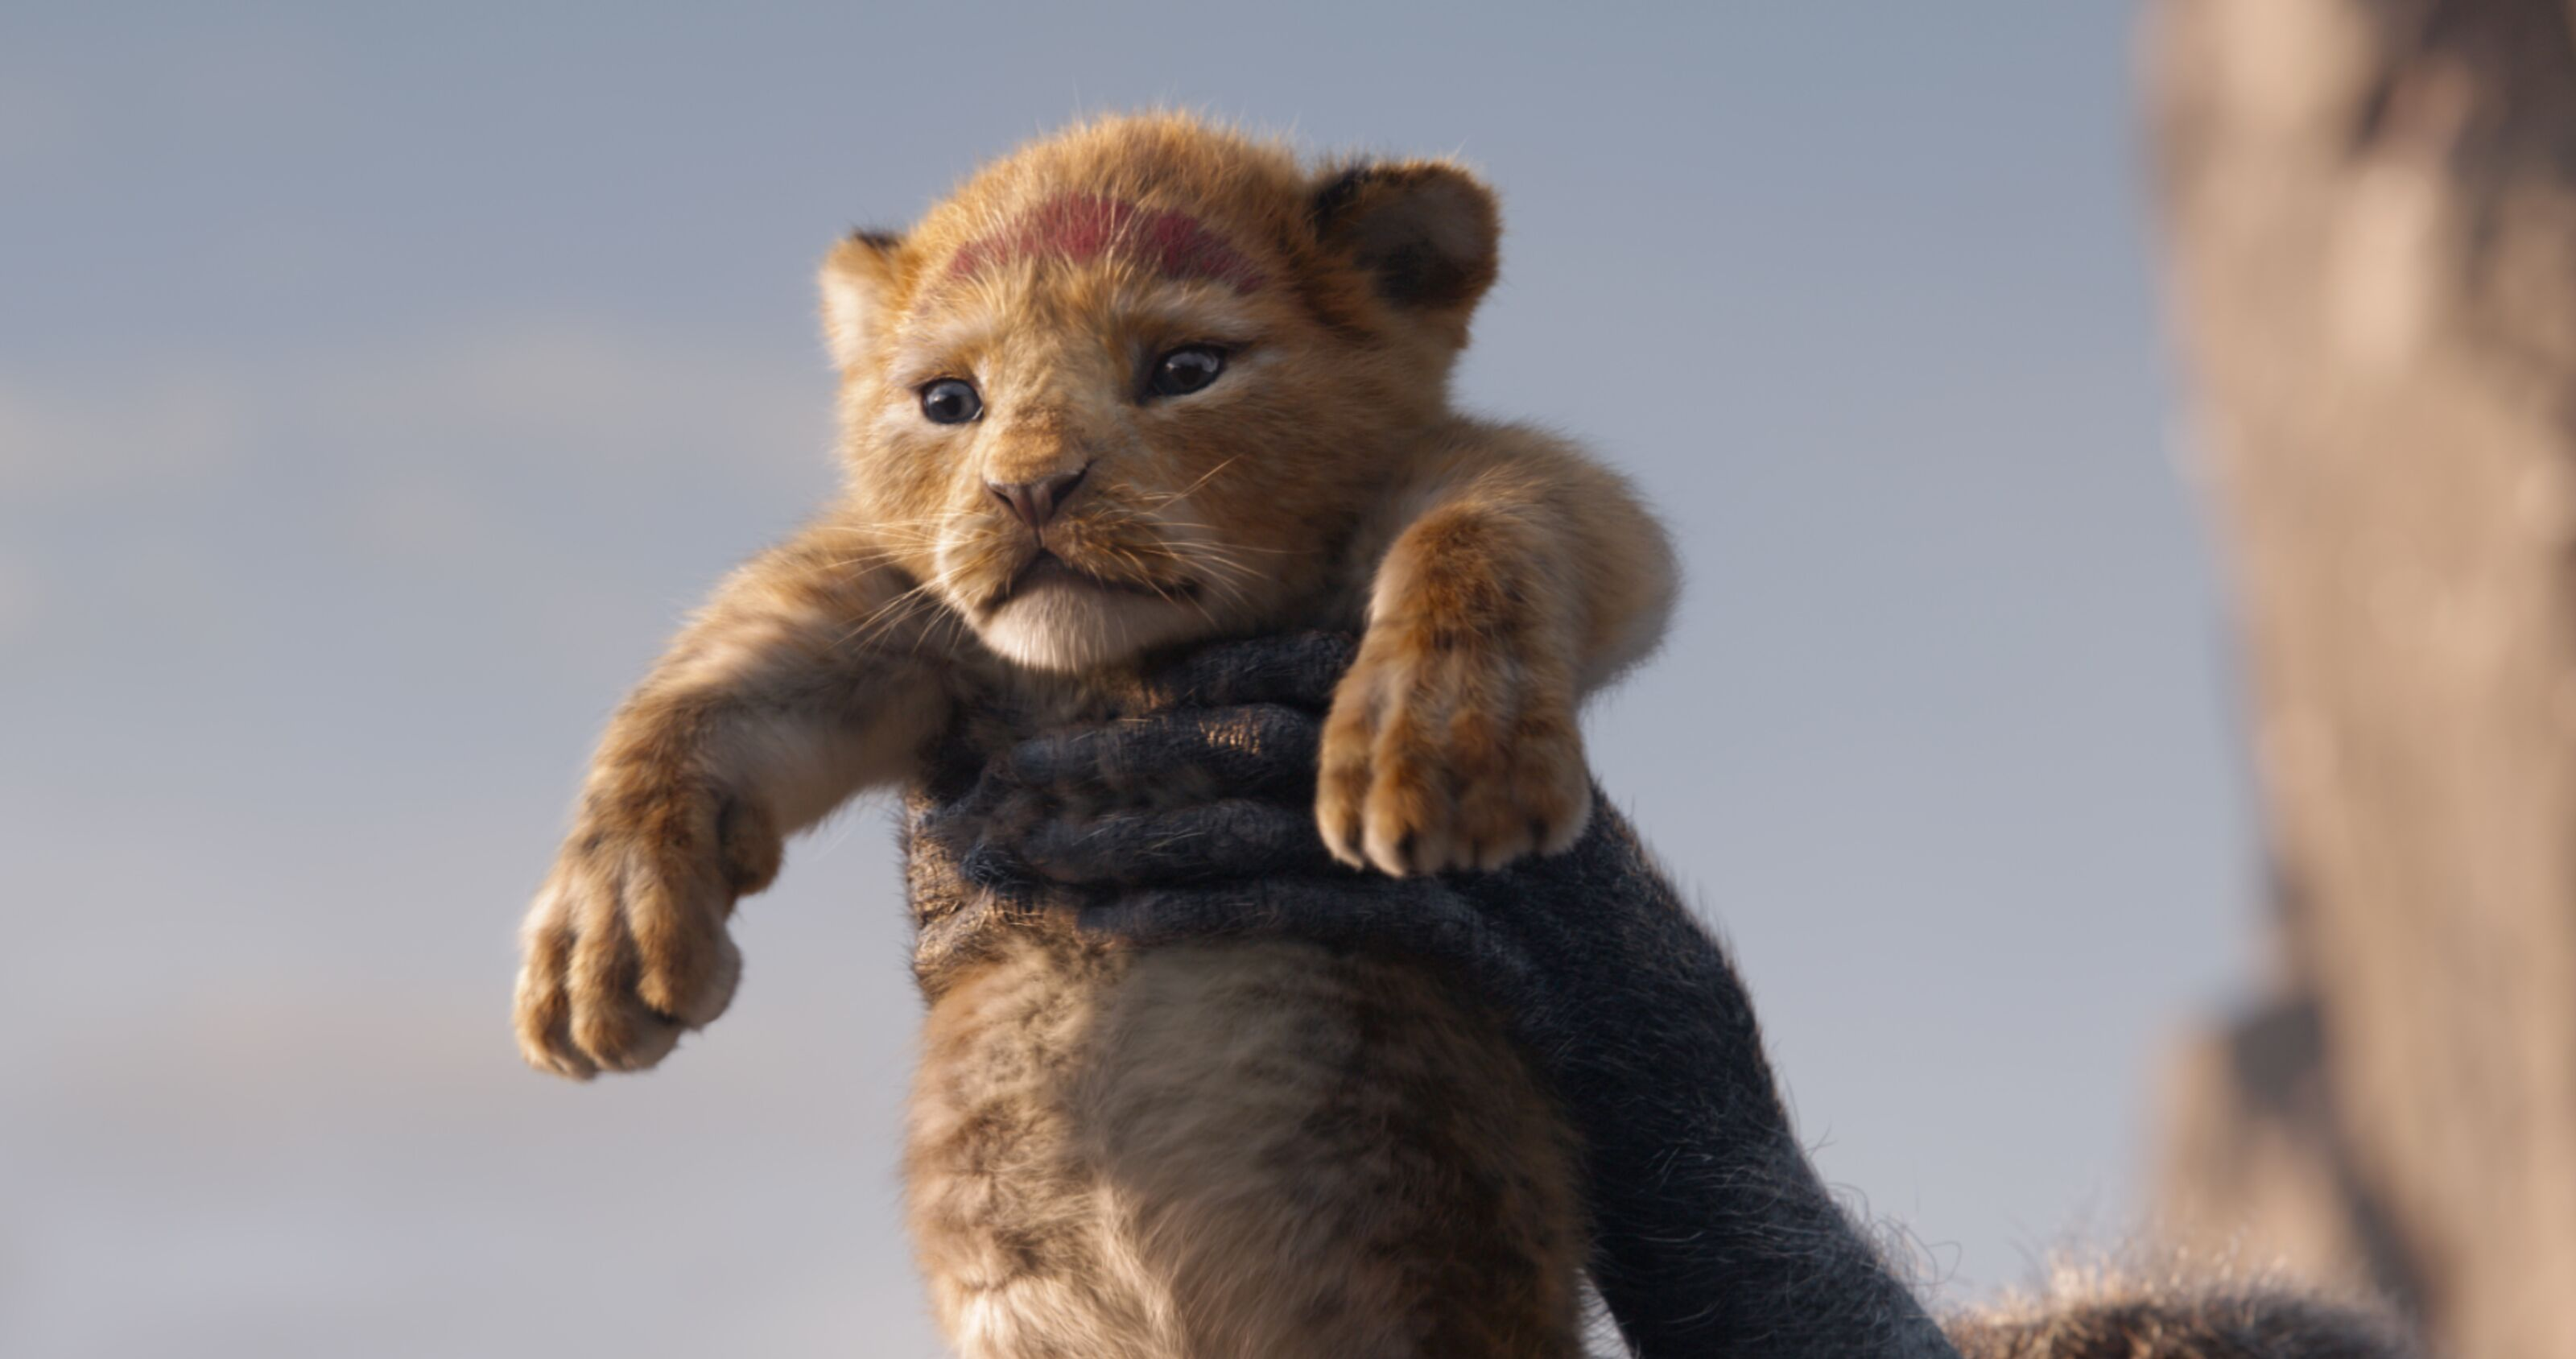 The Lion King is the live-action Disney movie we didn't need, but it had some bright spots